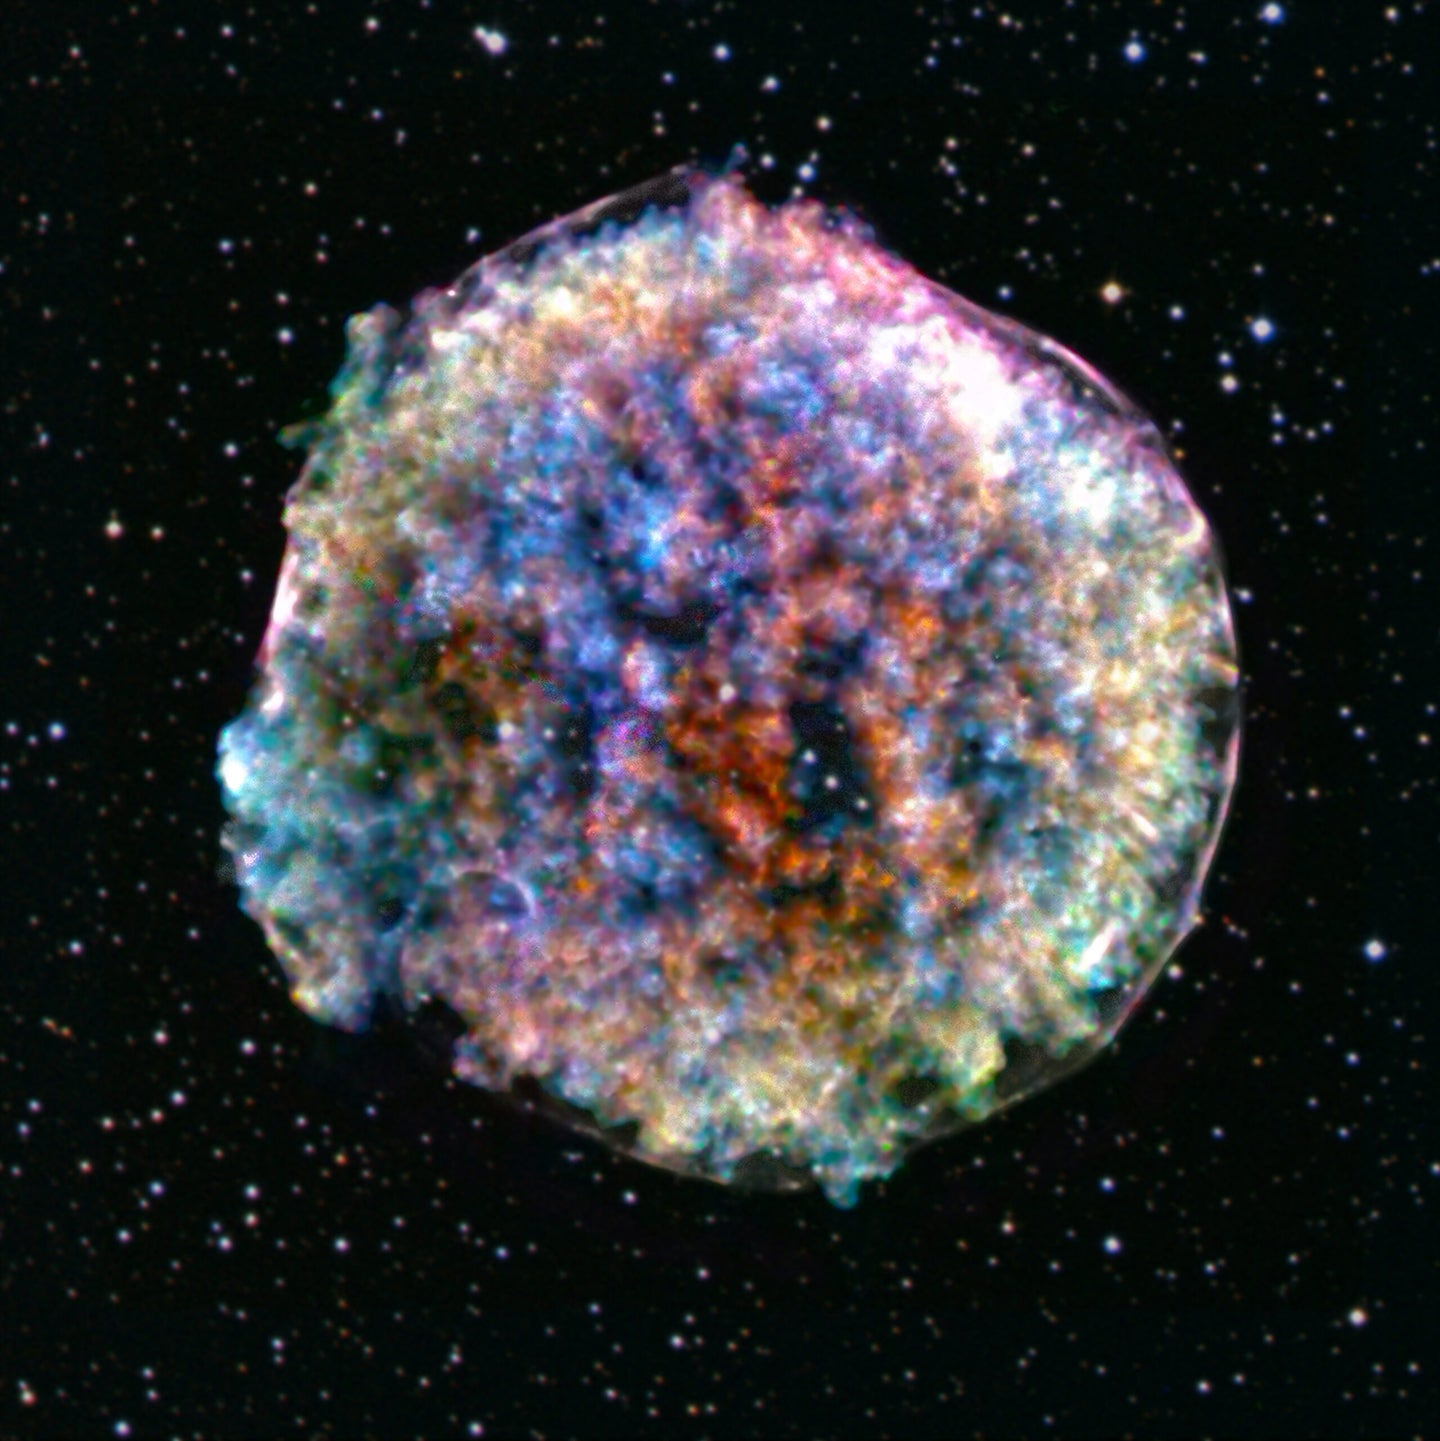 An X-ray and optical composite image of a detonating star.